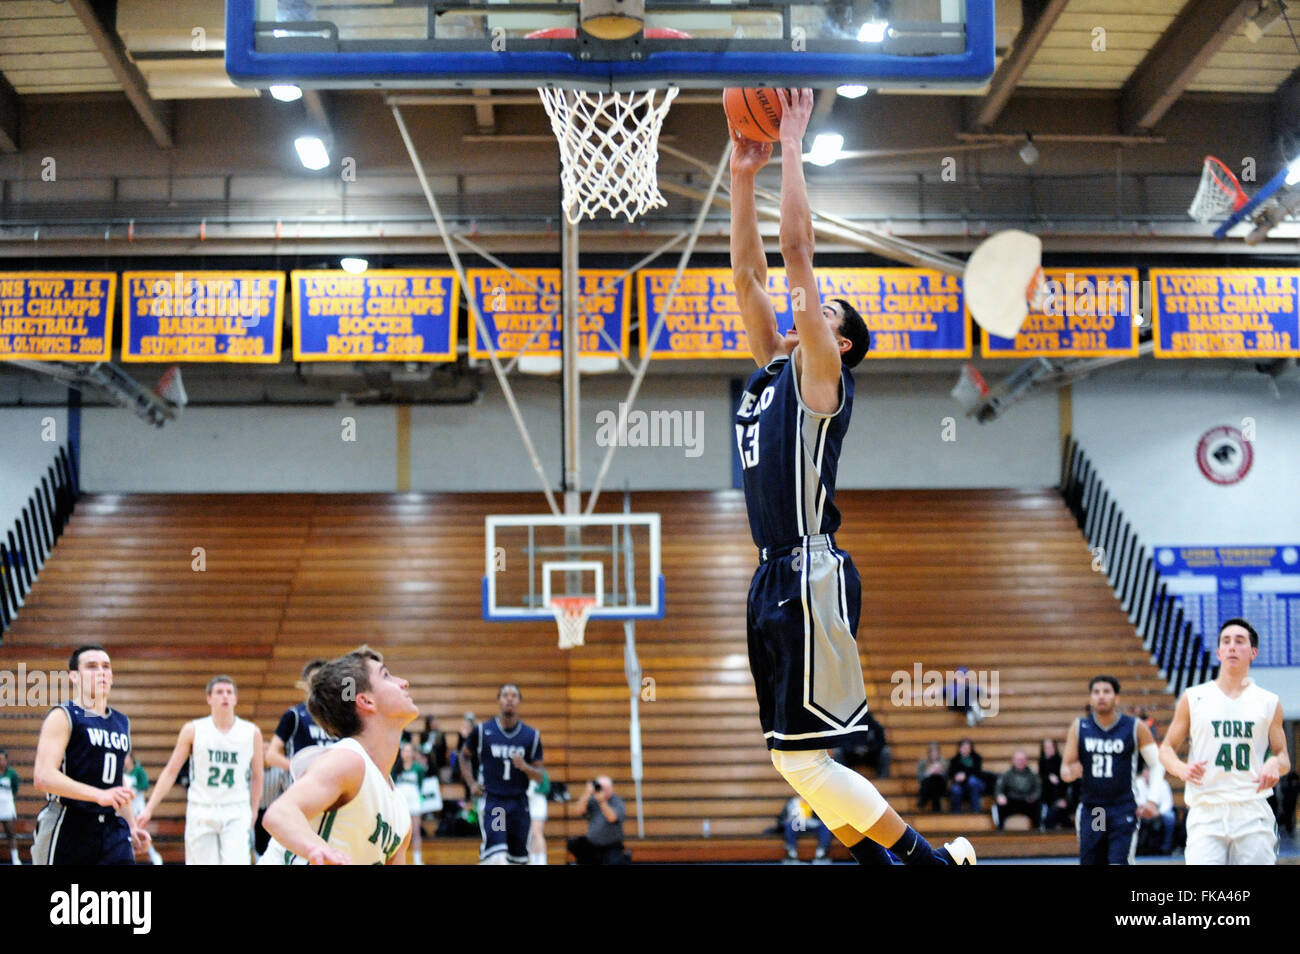 A high school player goes for a slam dunk while defensively unchallenged during a post season playoff game. USA. - Stock Image